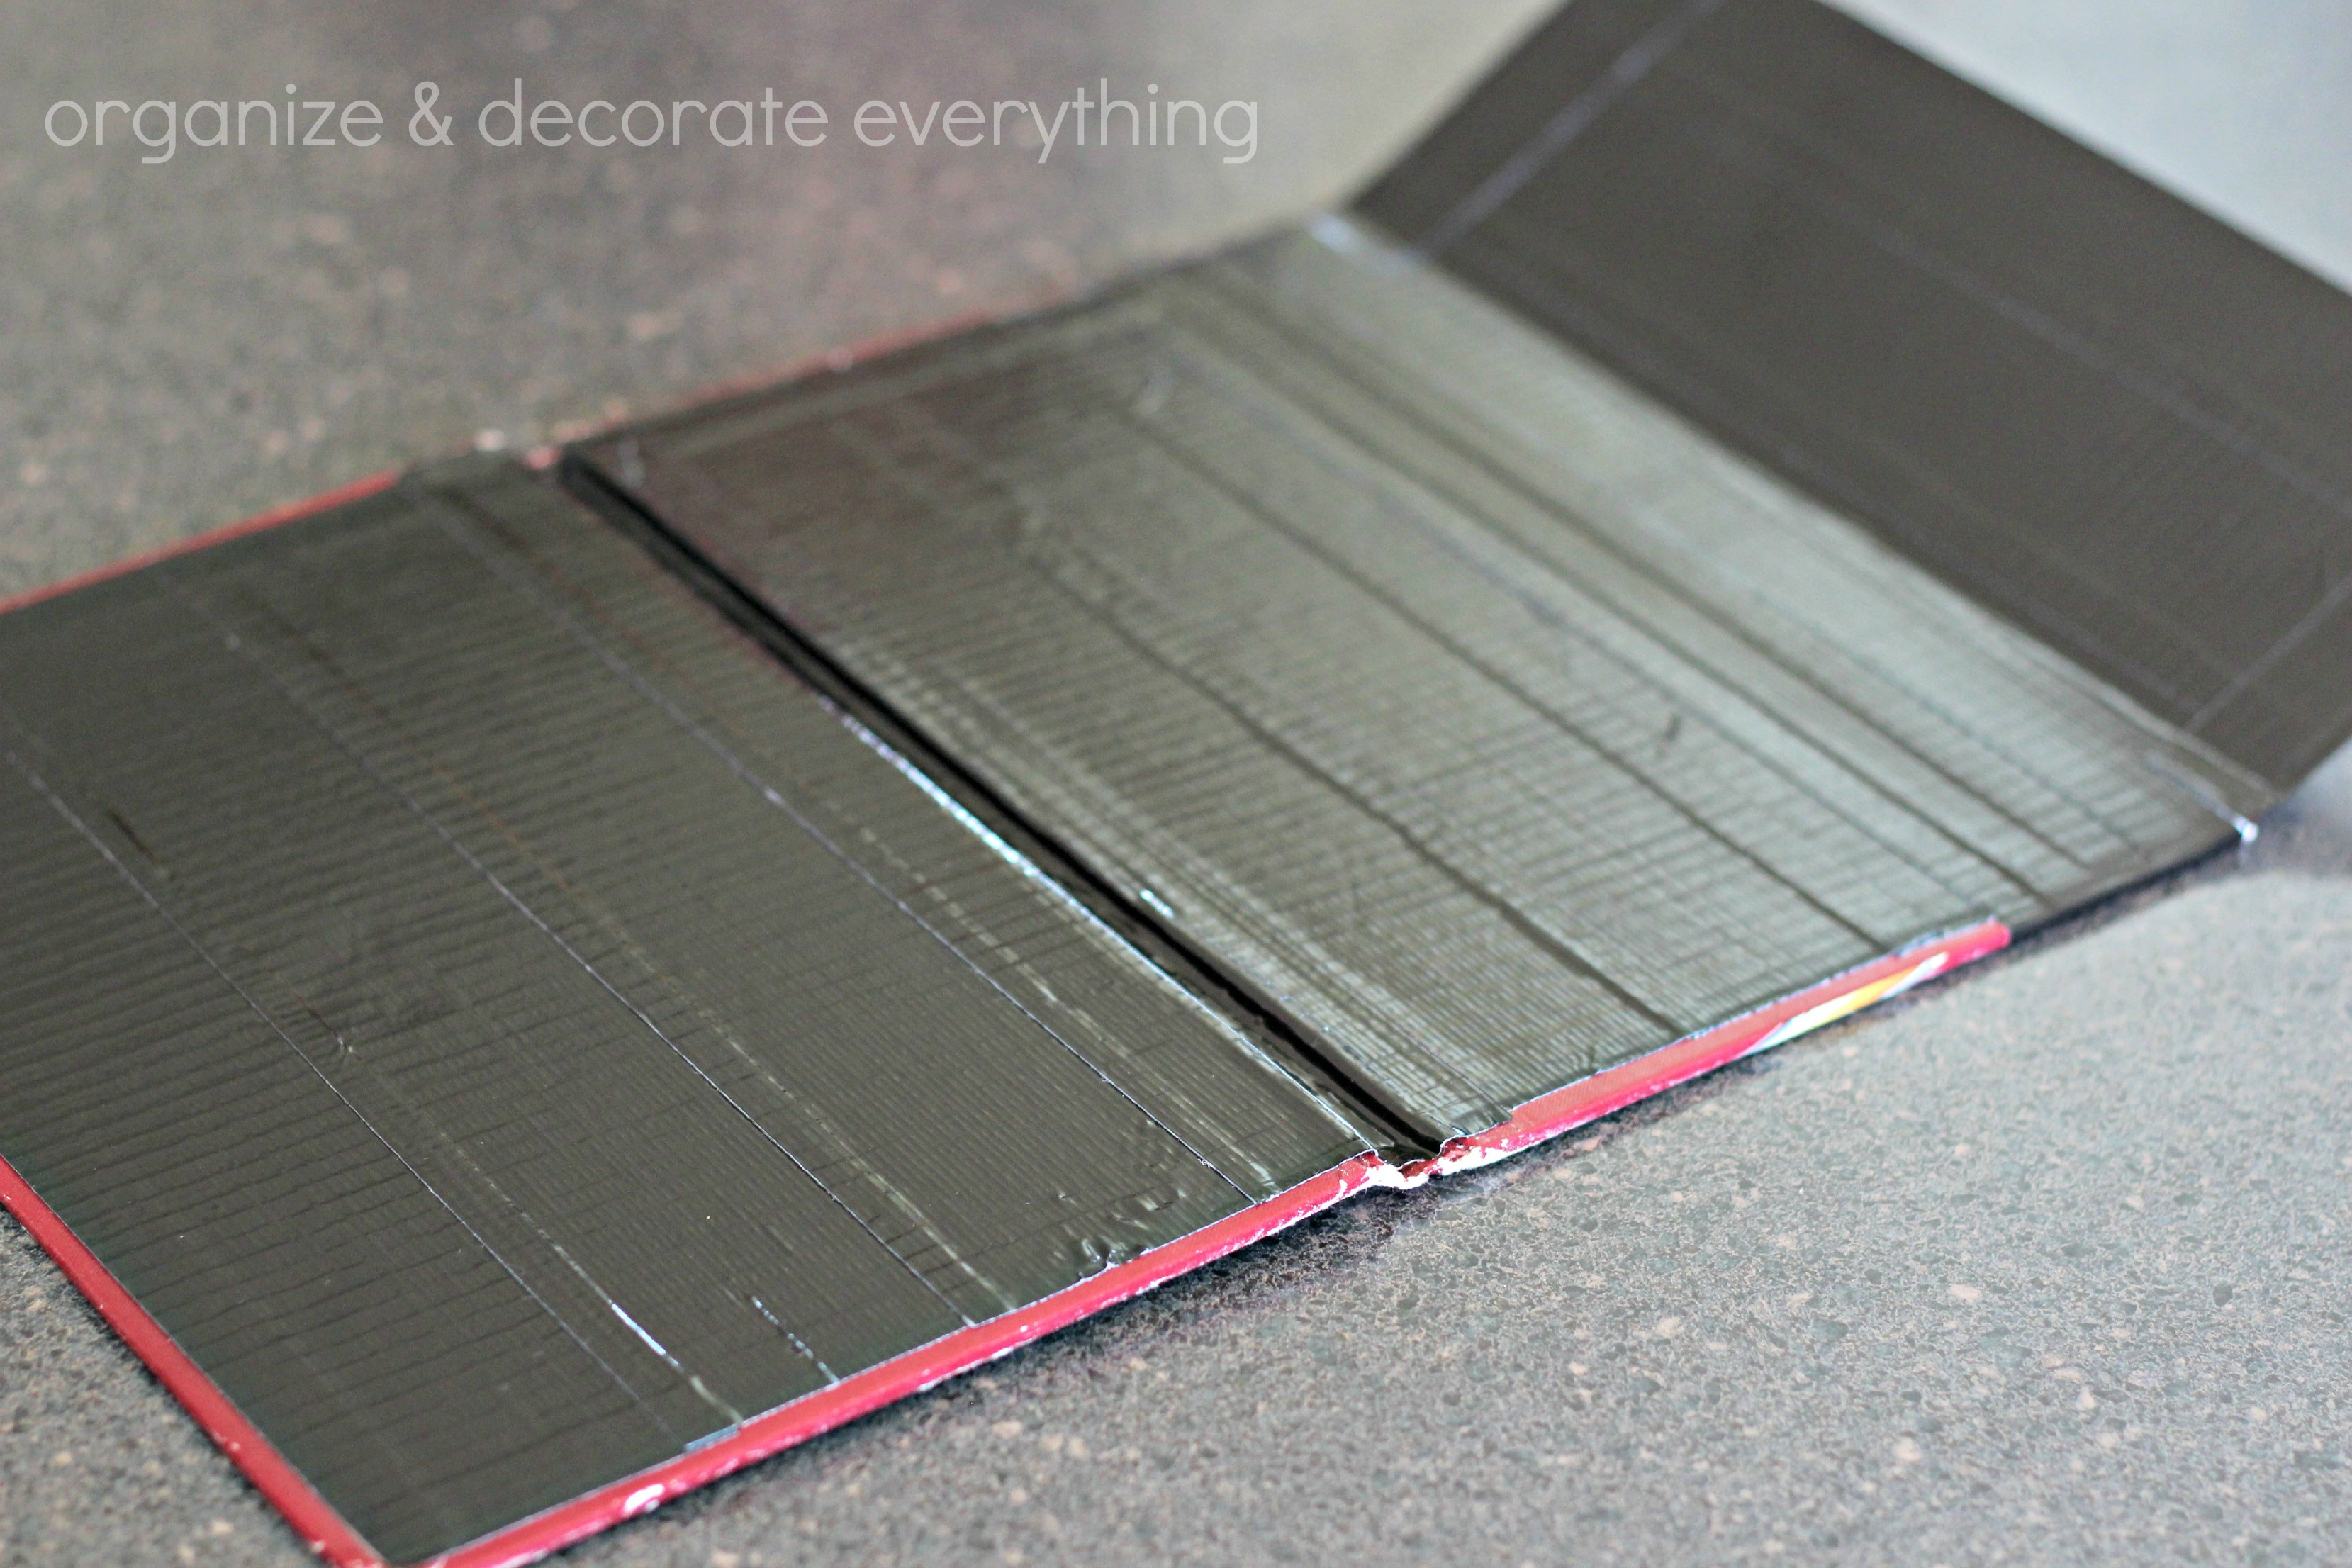 Diy Book Cover For Tablet : Duck tape tablet case organize and decorate everything